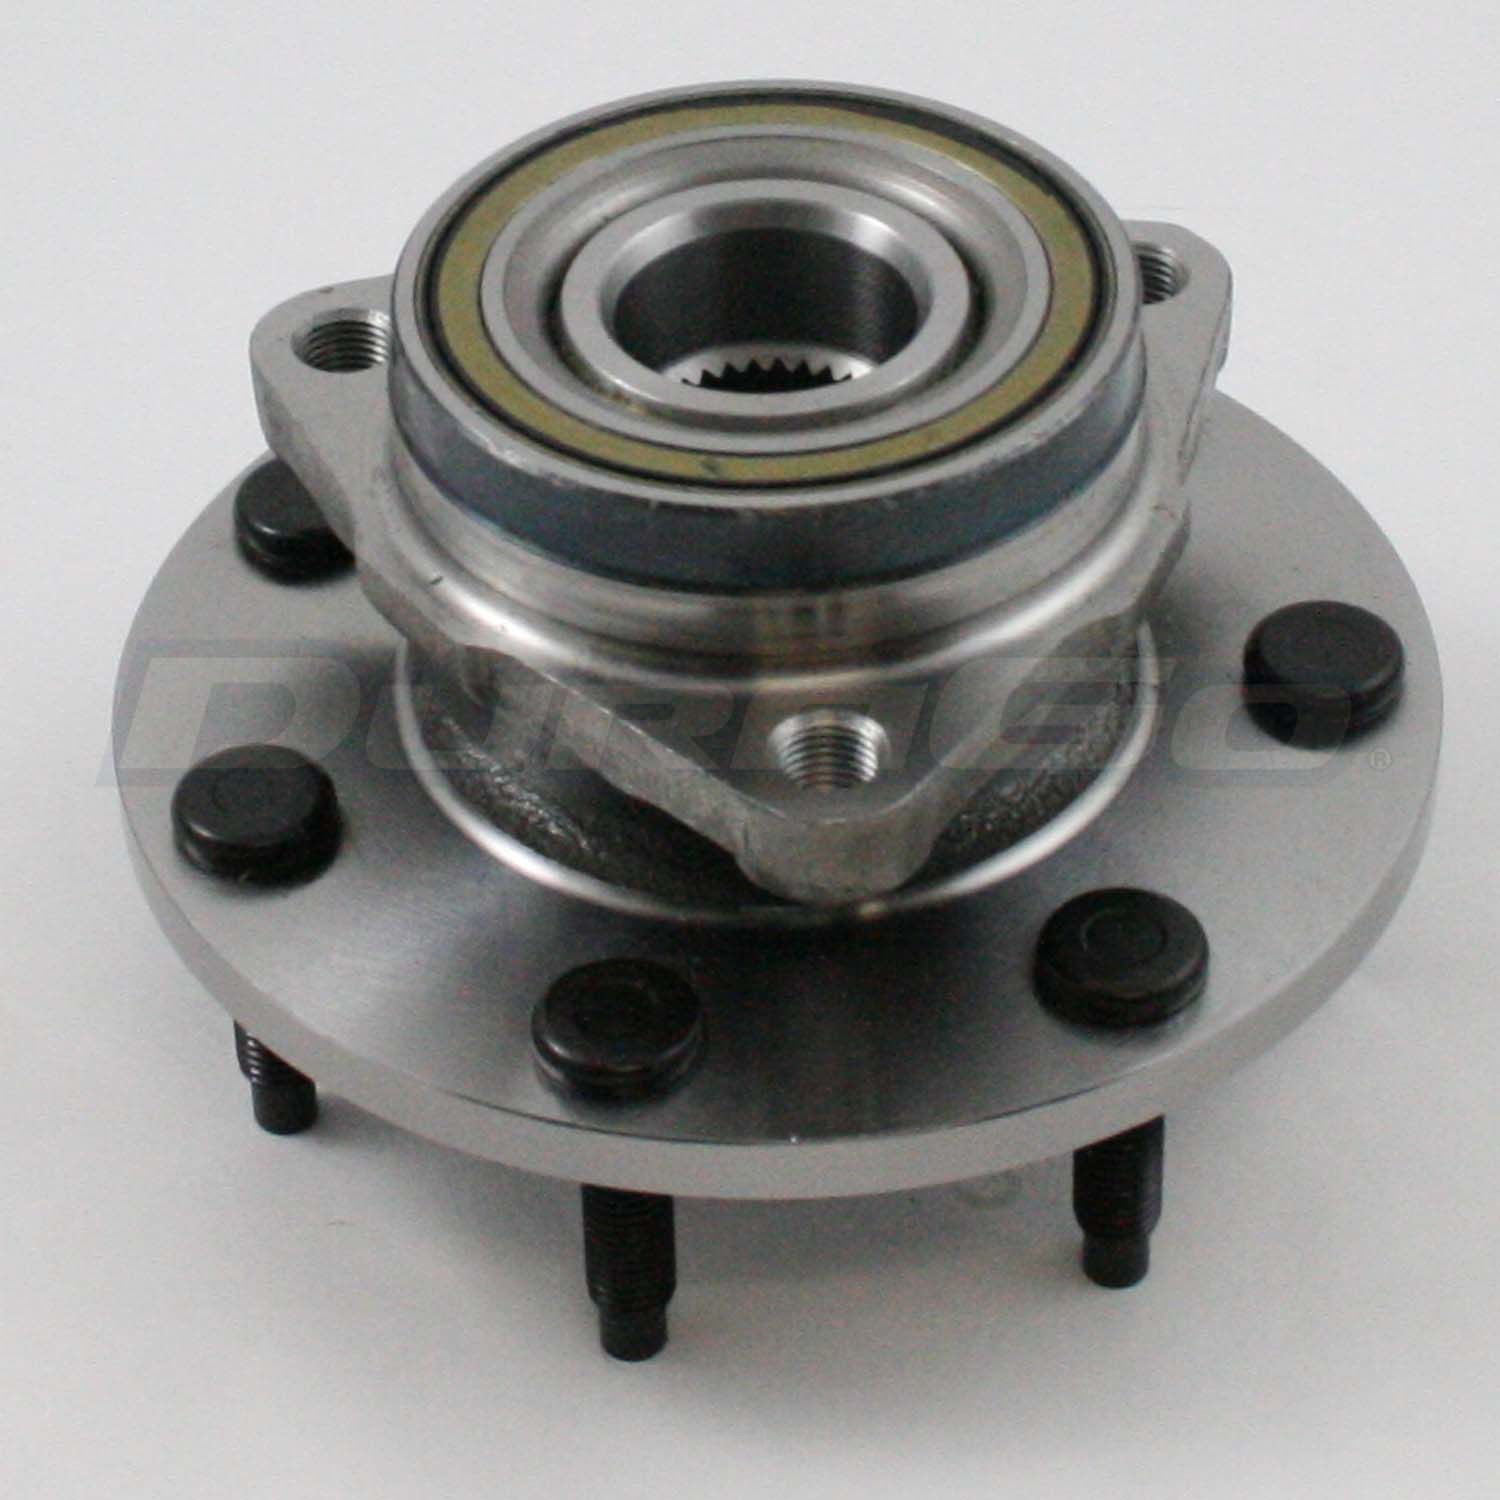 DURAGO - Axle Bearing and Hub Assembly - D48 295-15022